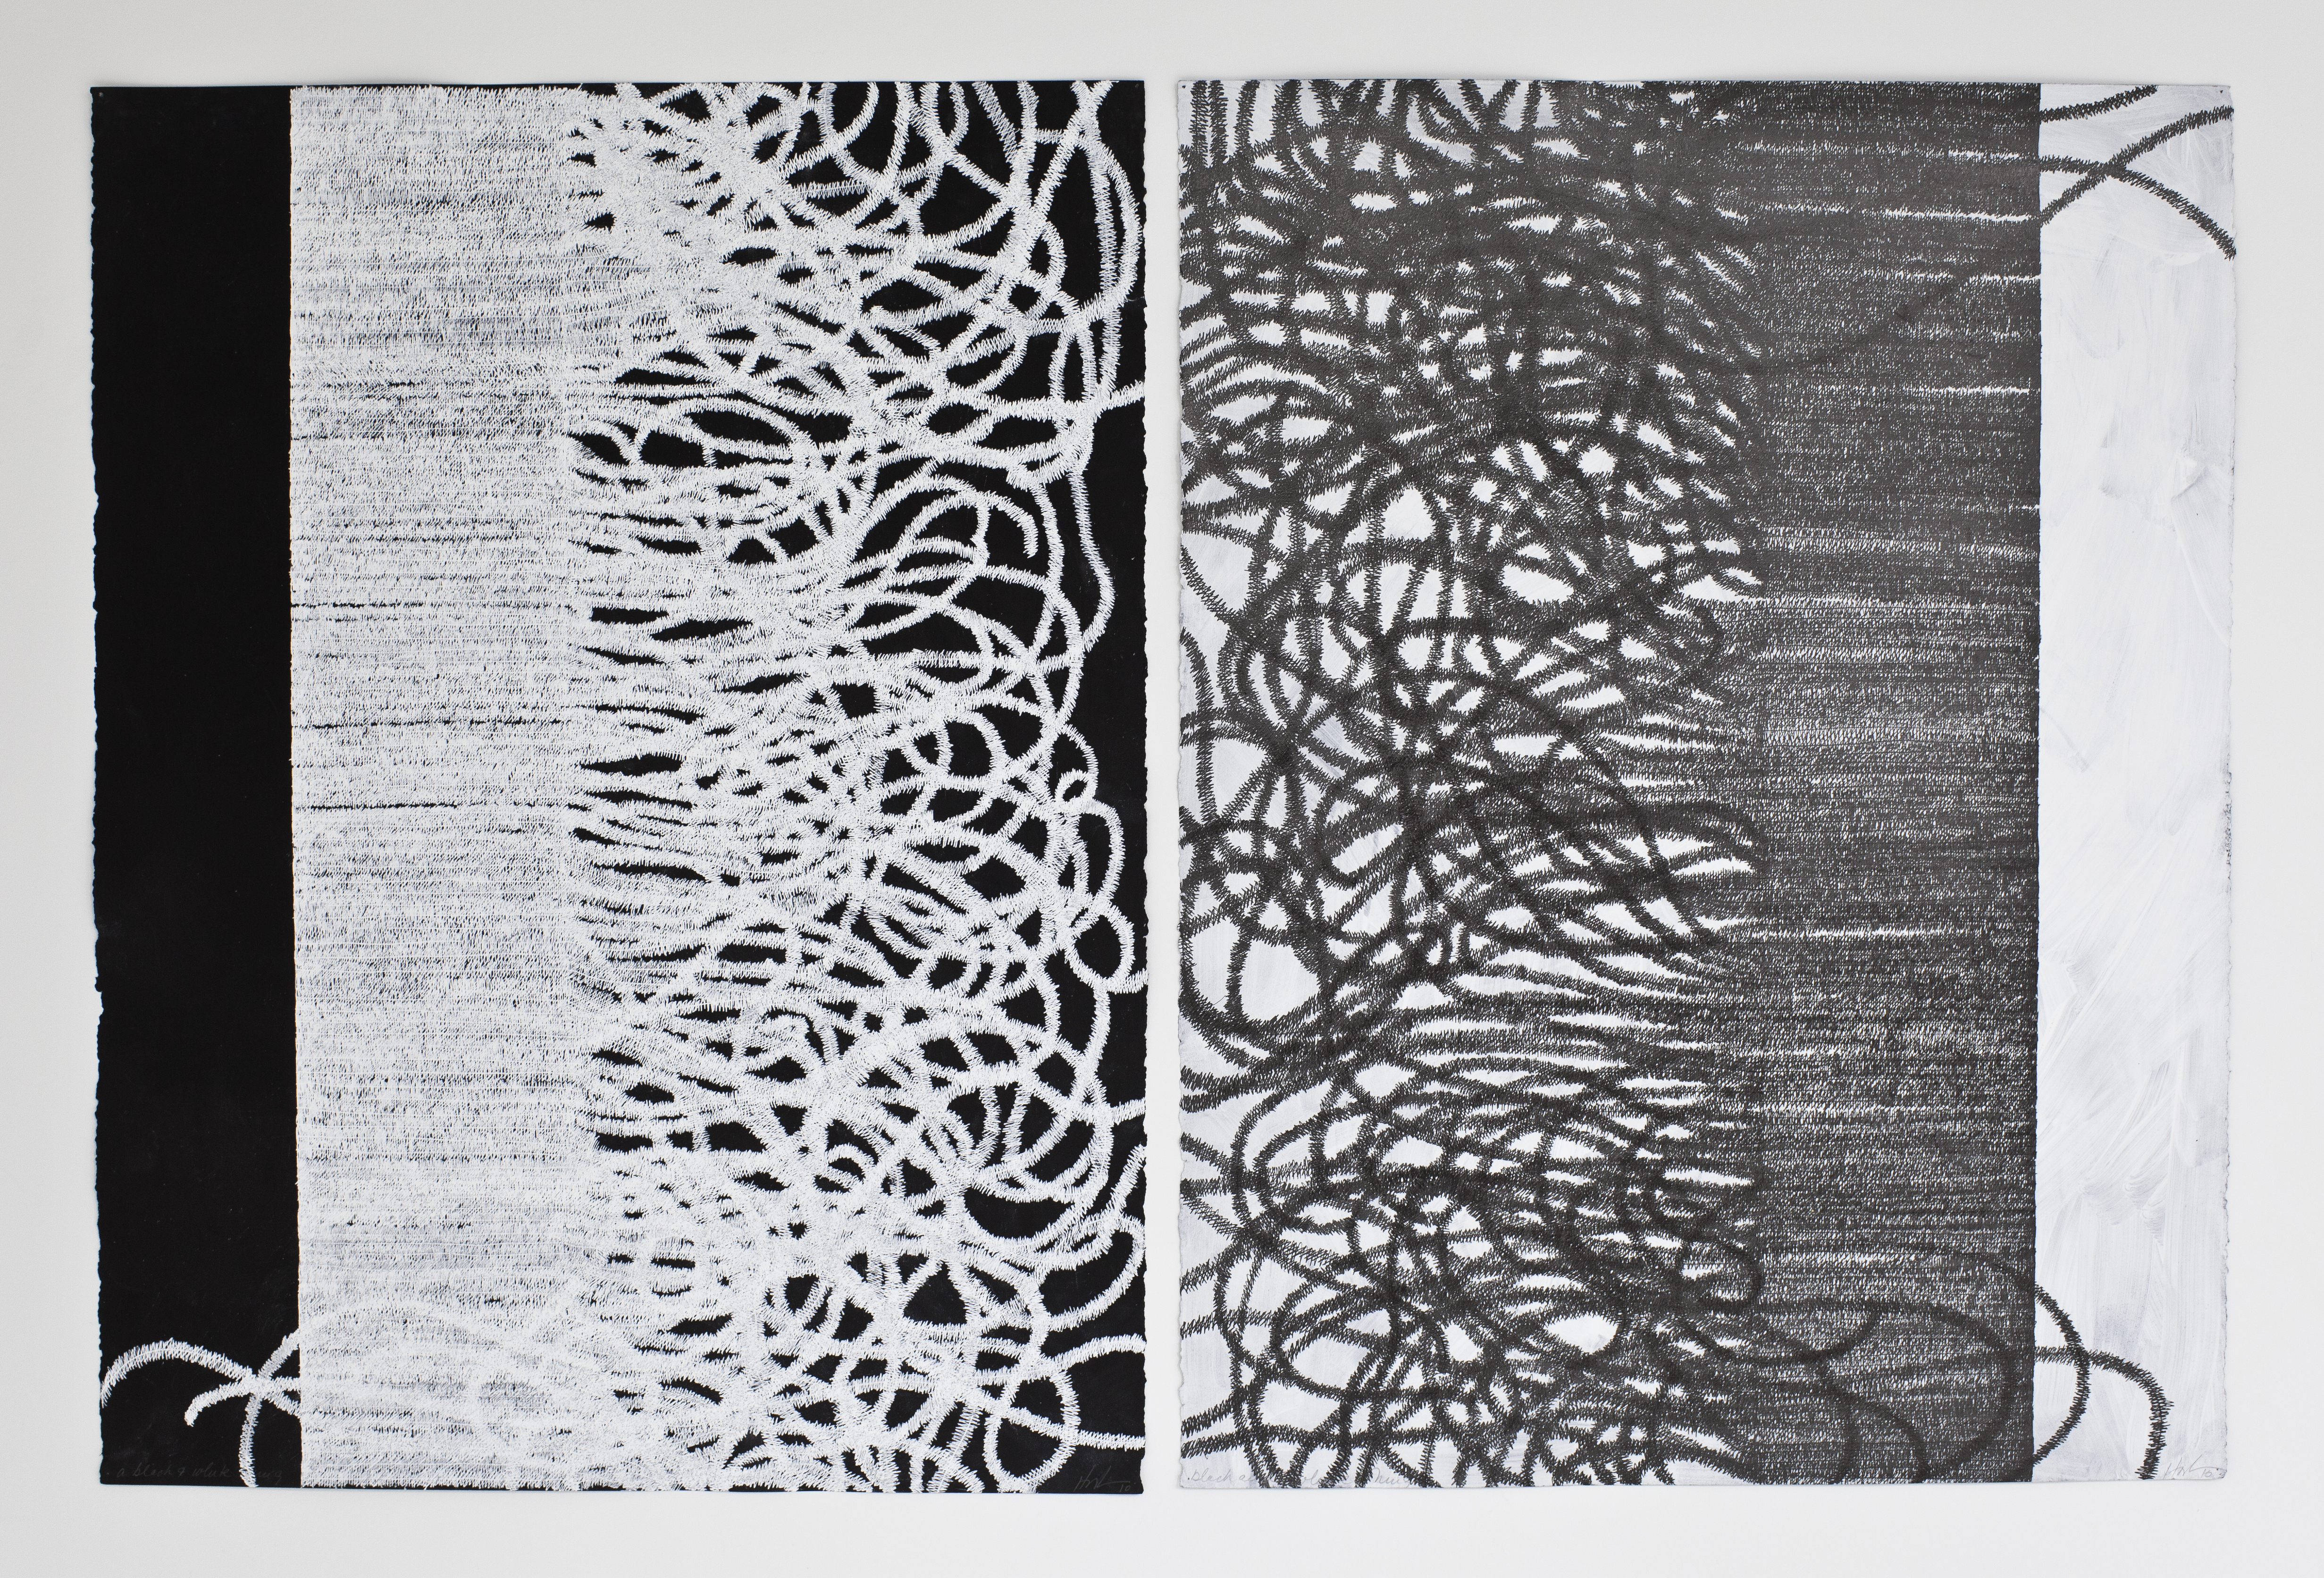 Lyn Horton, copyright, Black & White Things, 2011, 30 inches x 44 inches, ink on gouache on black paper hires